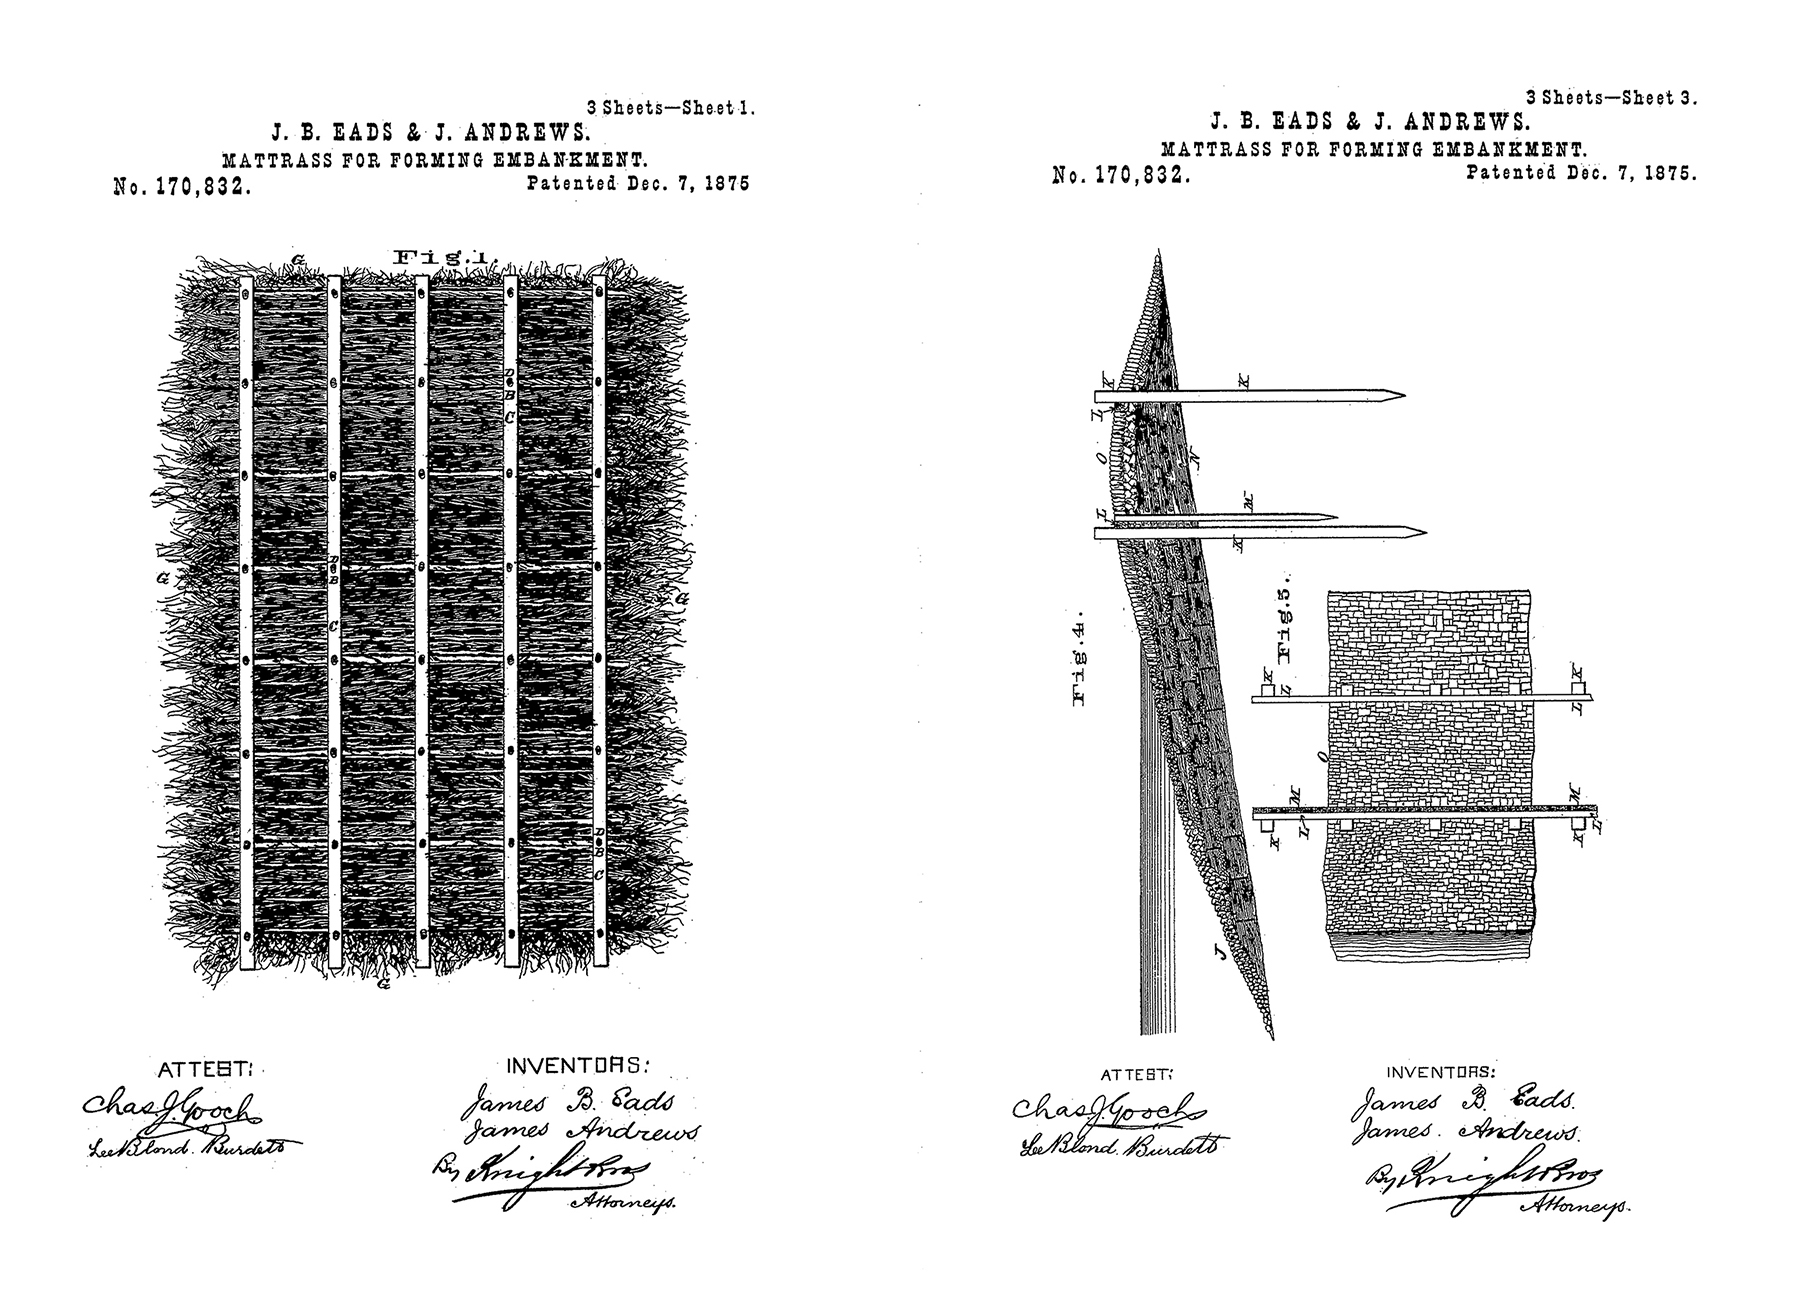 "Patents have been used as a ""stick"" to break government monopolies and promote innovation in physical infrastructure. James Buchanan Eads' precedent ""Mattress for Forming Embankment"" was prototyped and tested for four years at the mouth of the Mississippi River against the will of the USACE. Images from USPTO.gov."